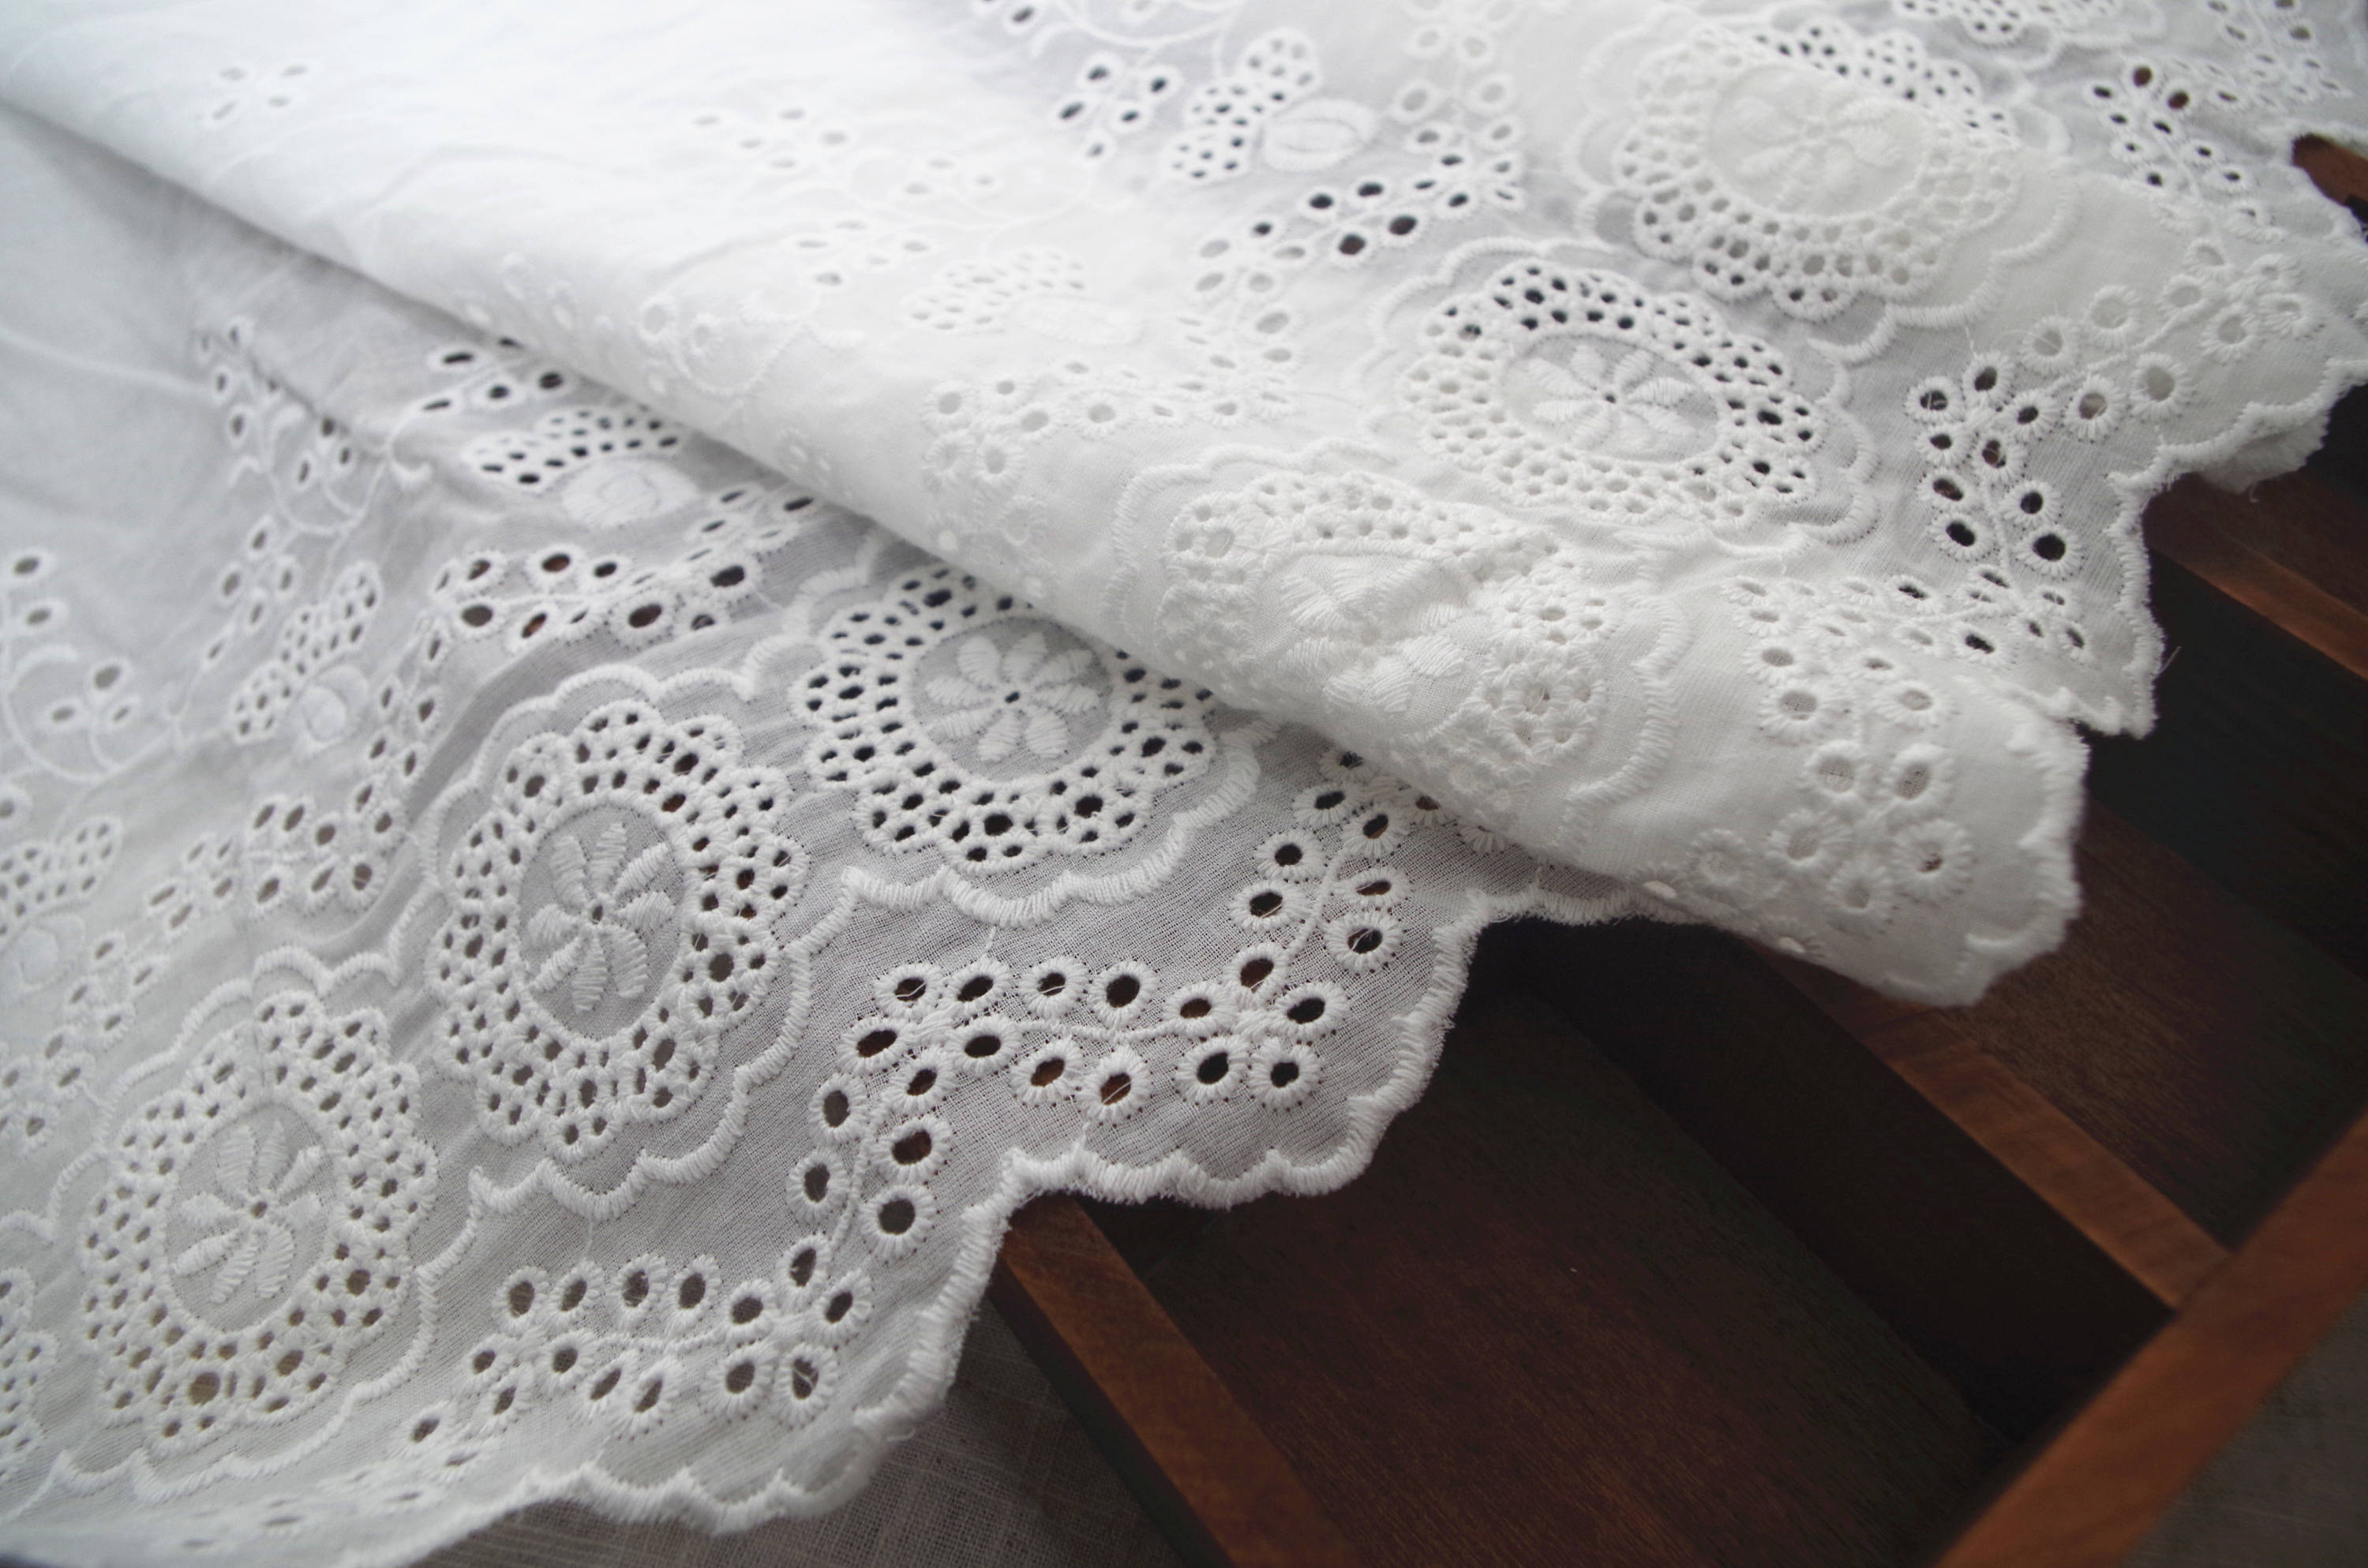 natural Cotton Lace trim, embroidered eyelet lace trim, cotton lace trim with hollowed out floral, cotton eyelet lace fabric